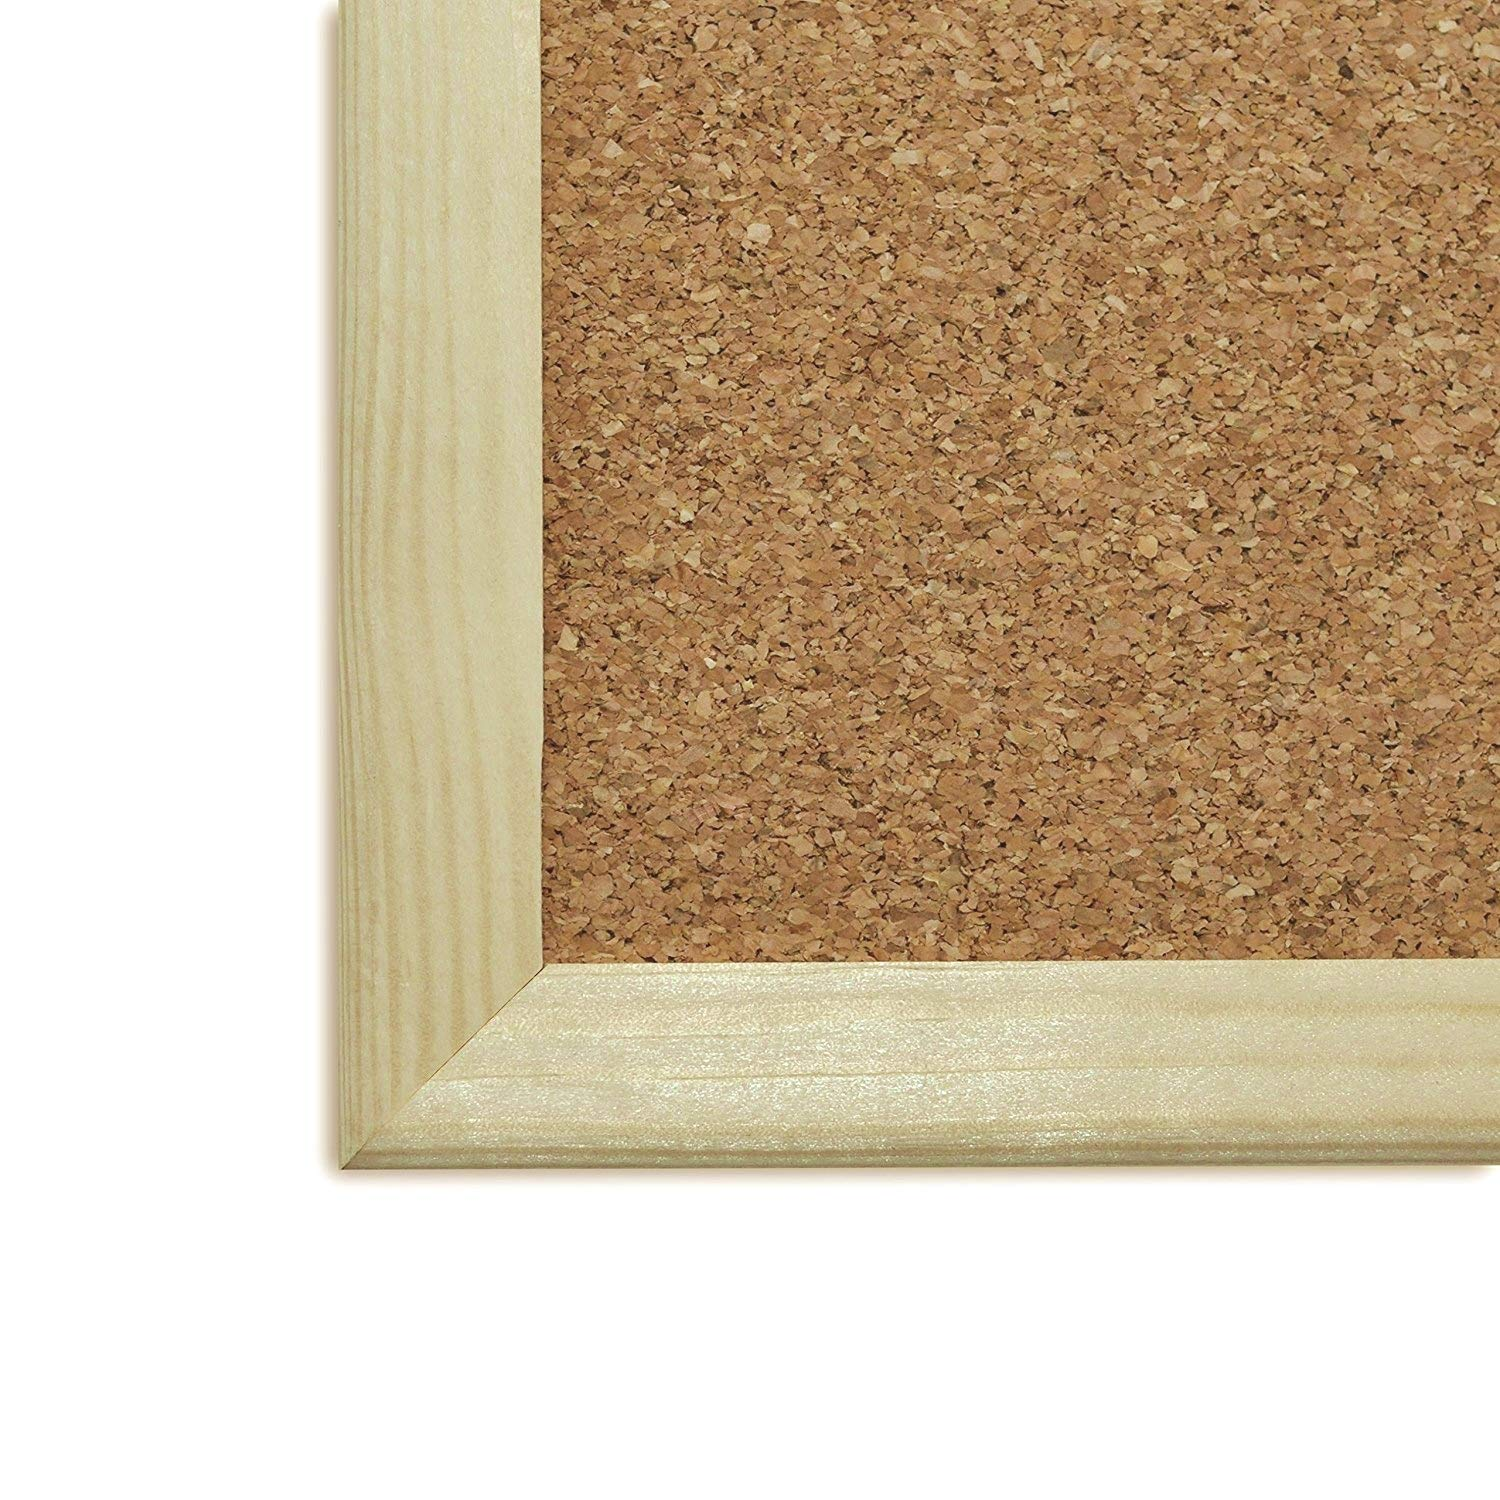 Bedroom /& Home School Made in EU 300 x 400 mm Cork Notice Board Thick Pine Frame Perfect for Office